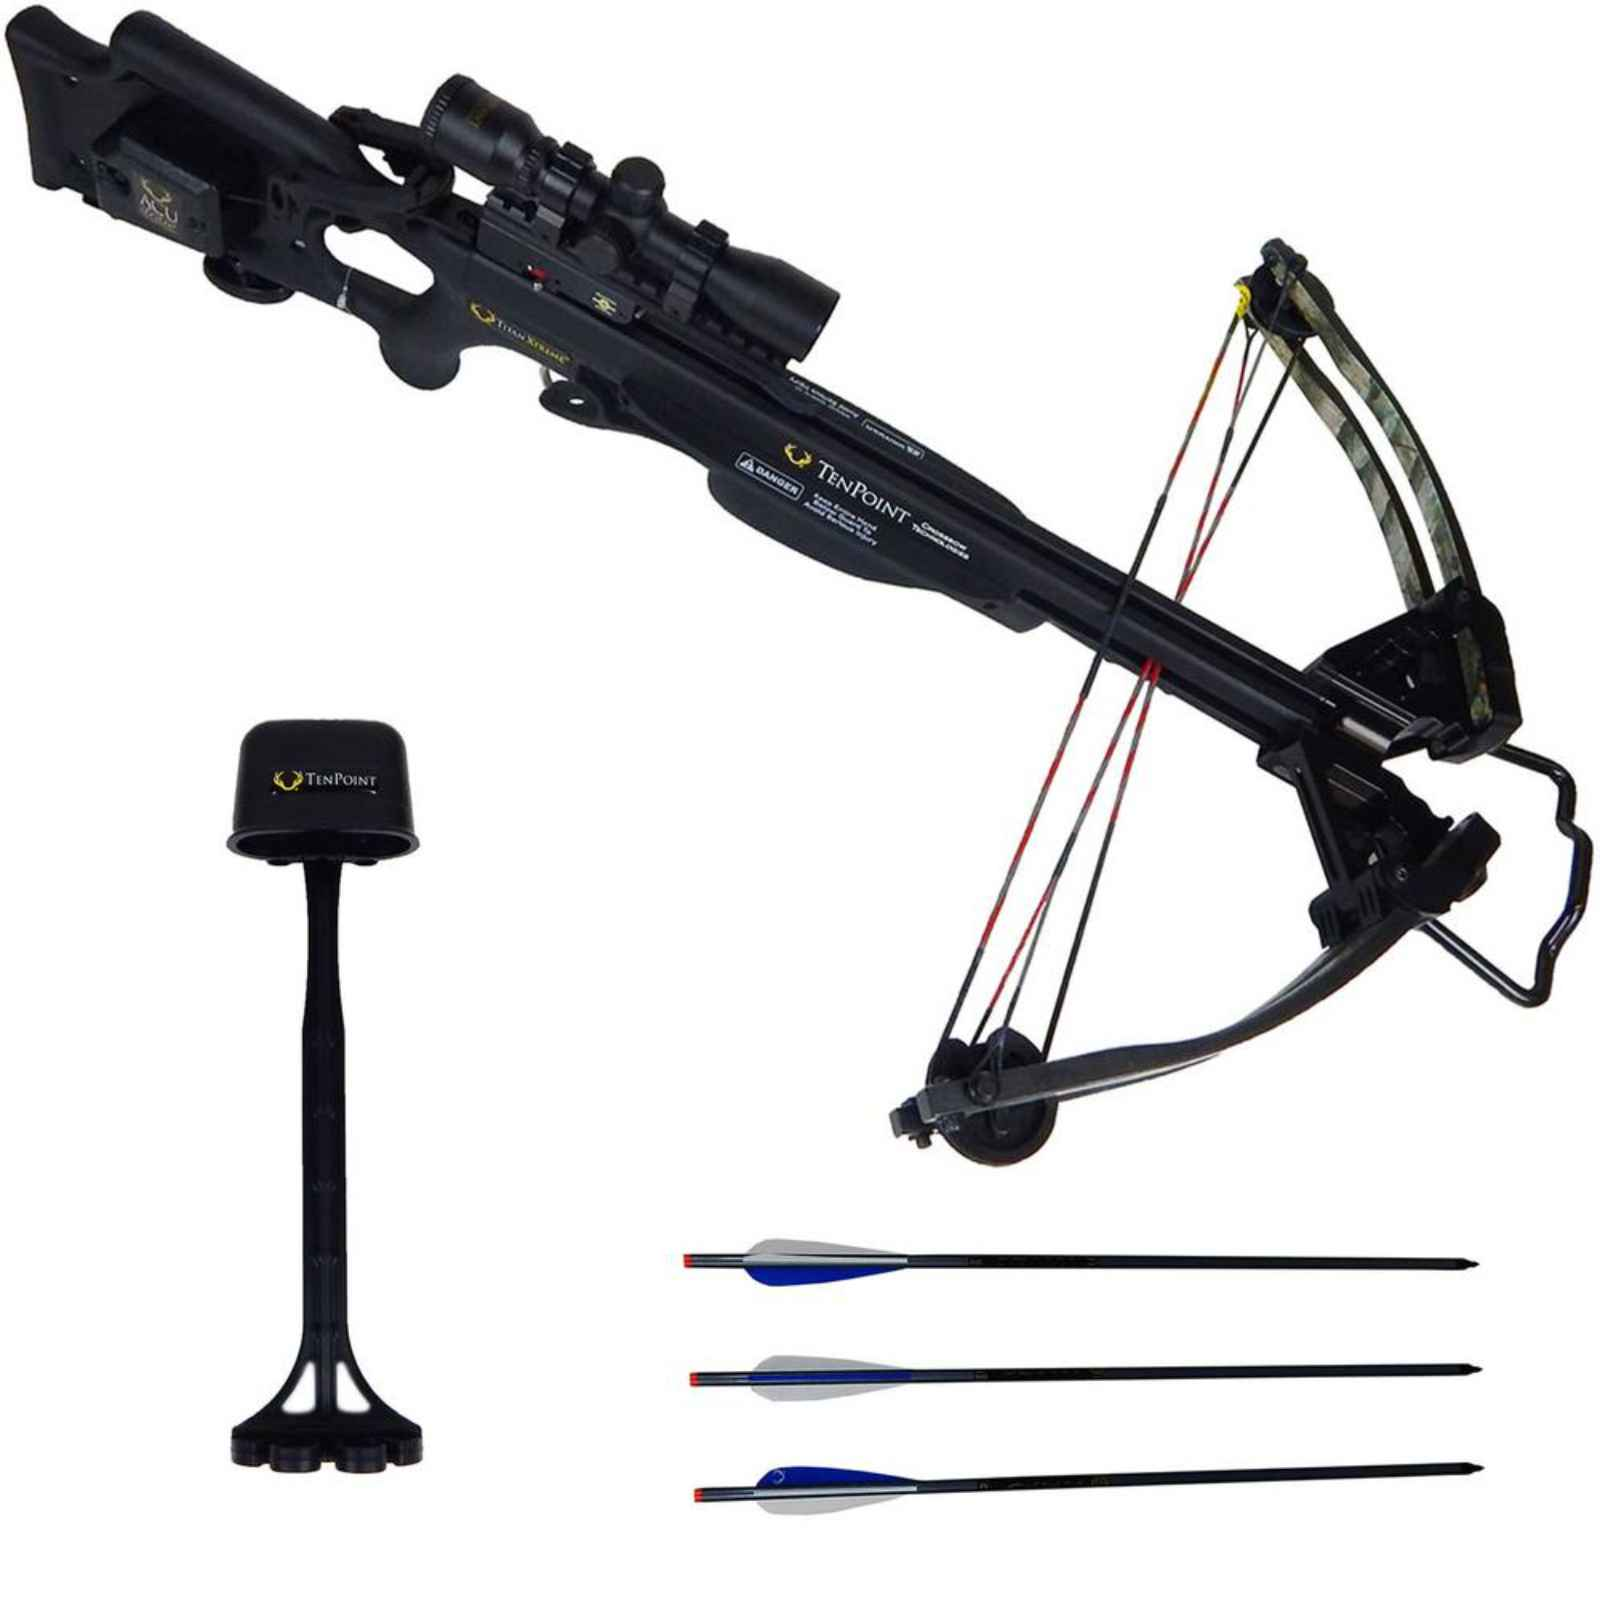 Tenpoint Titan Xtreme Crossbow Scope Package AcuDraw Blac...